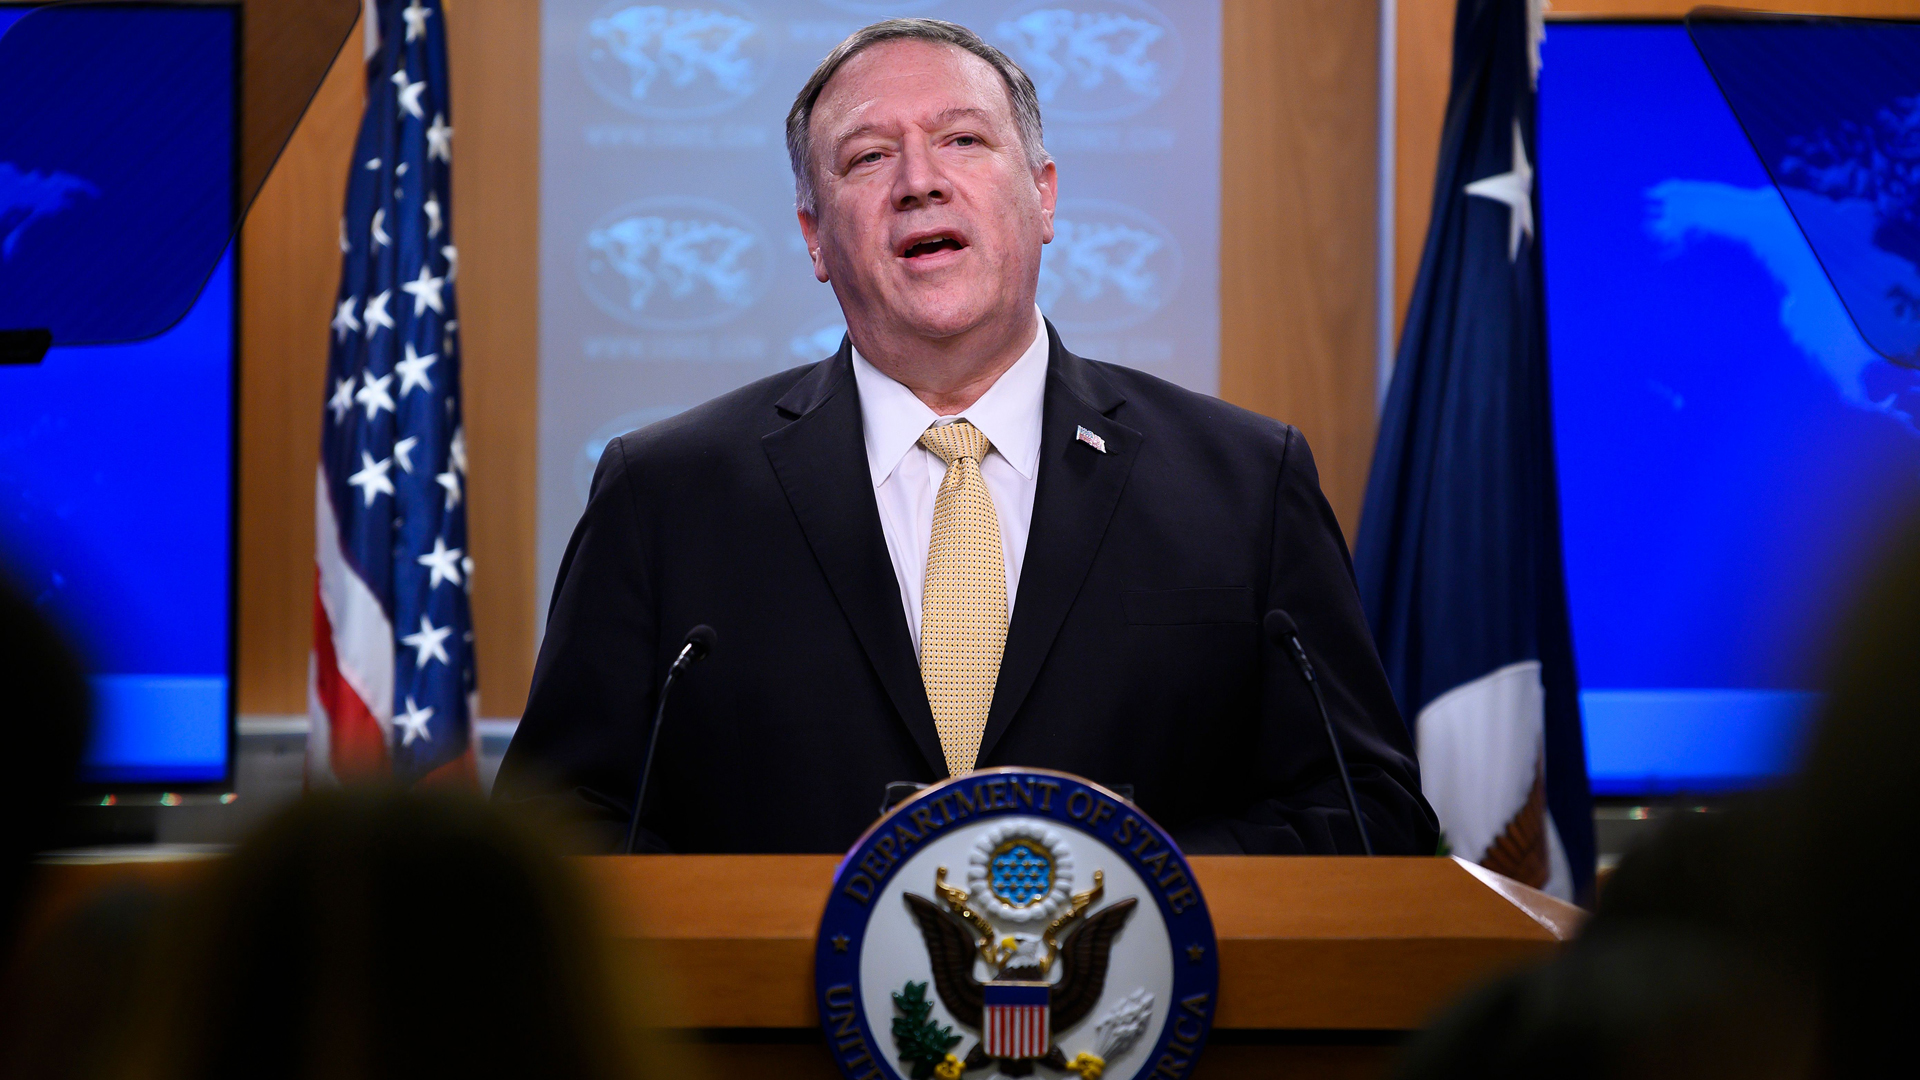 U.S. Secretary of State Mike Pompeo makes a statement during a press conference at the US Department of State in Washington, DC, on Nov. 18, 2019. (Credit: Jim Watson/AFP via Getty Images)